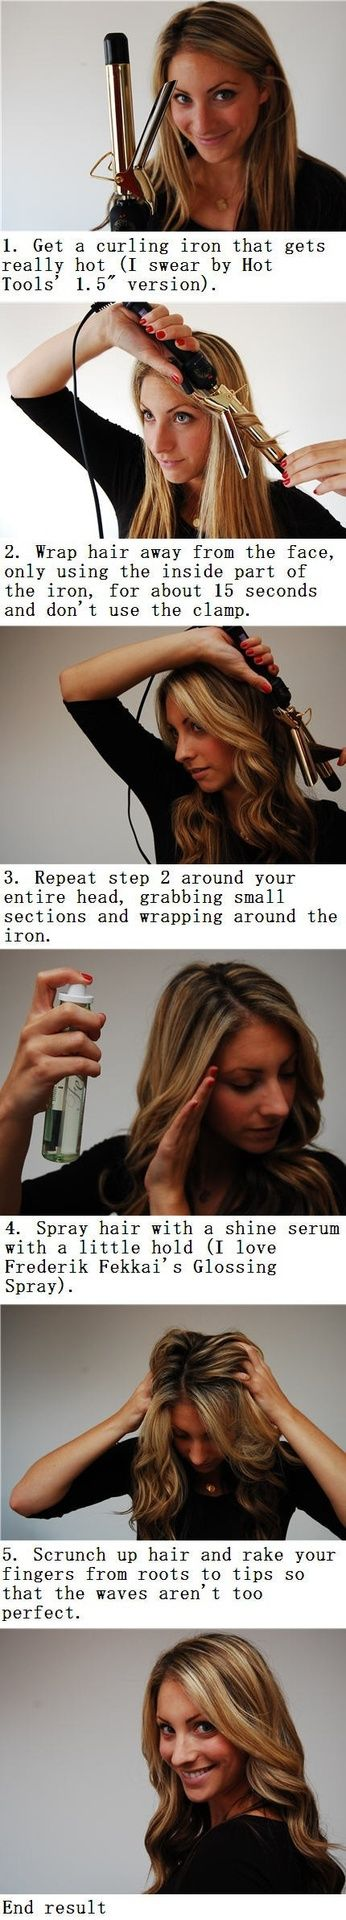 Curling iron Hair beauty, Hair hacks, Hair styles